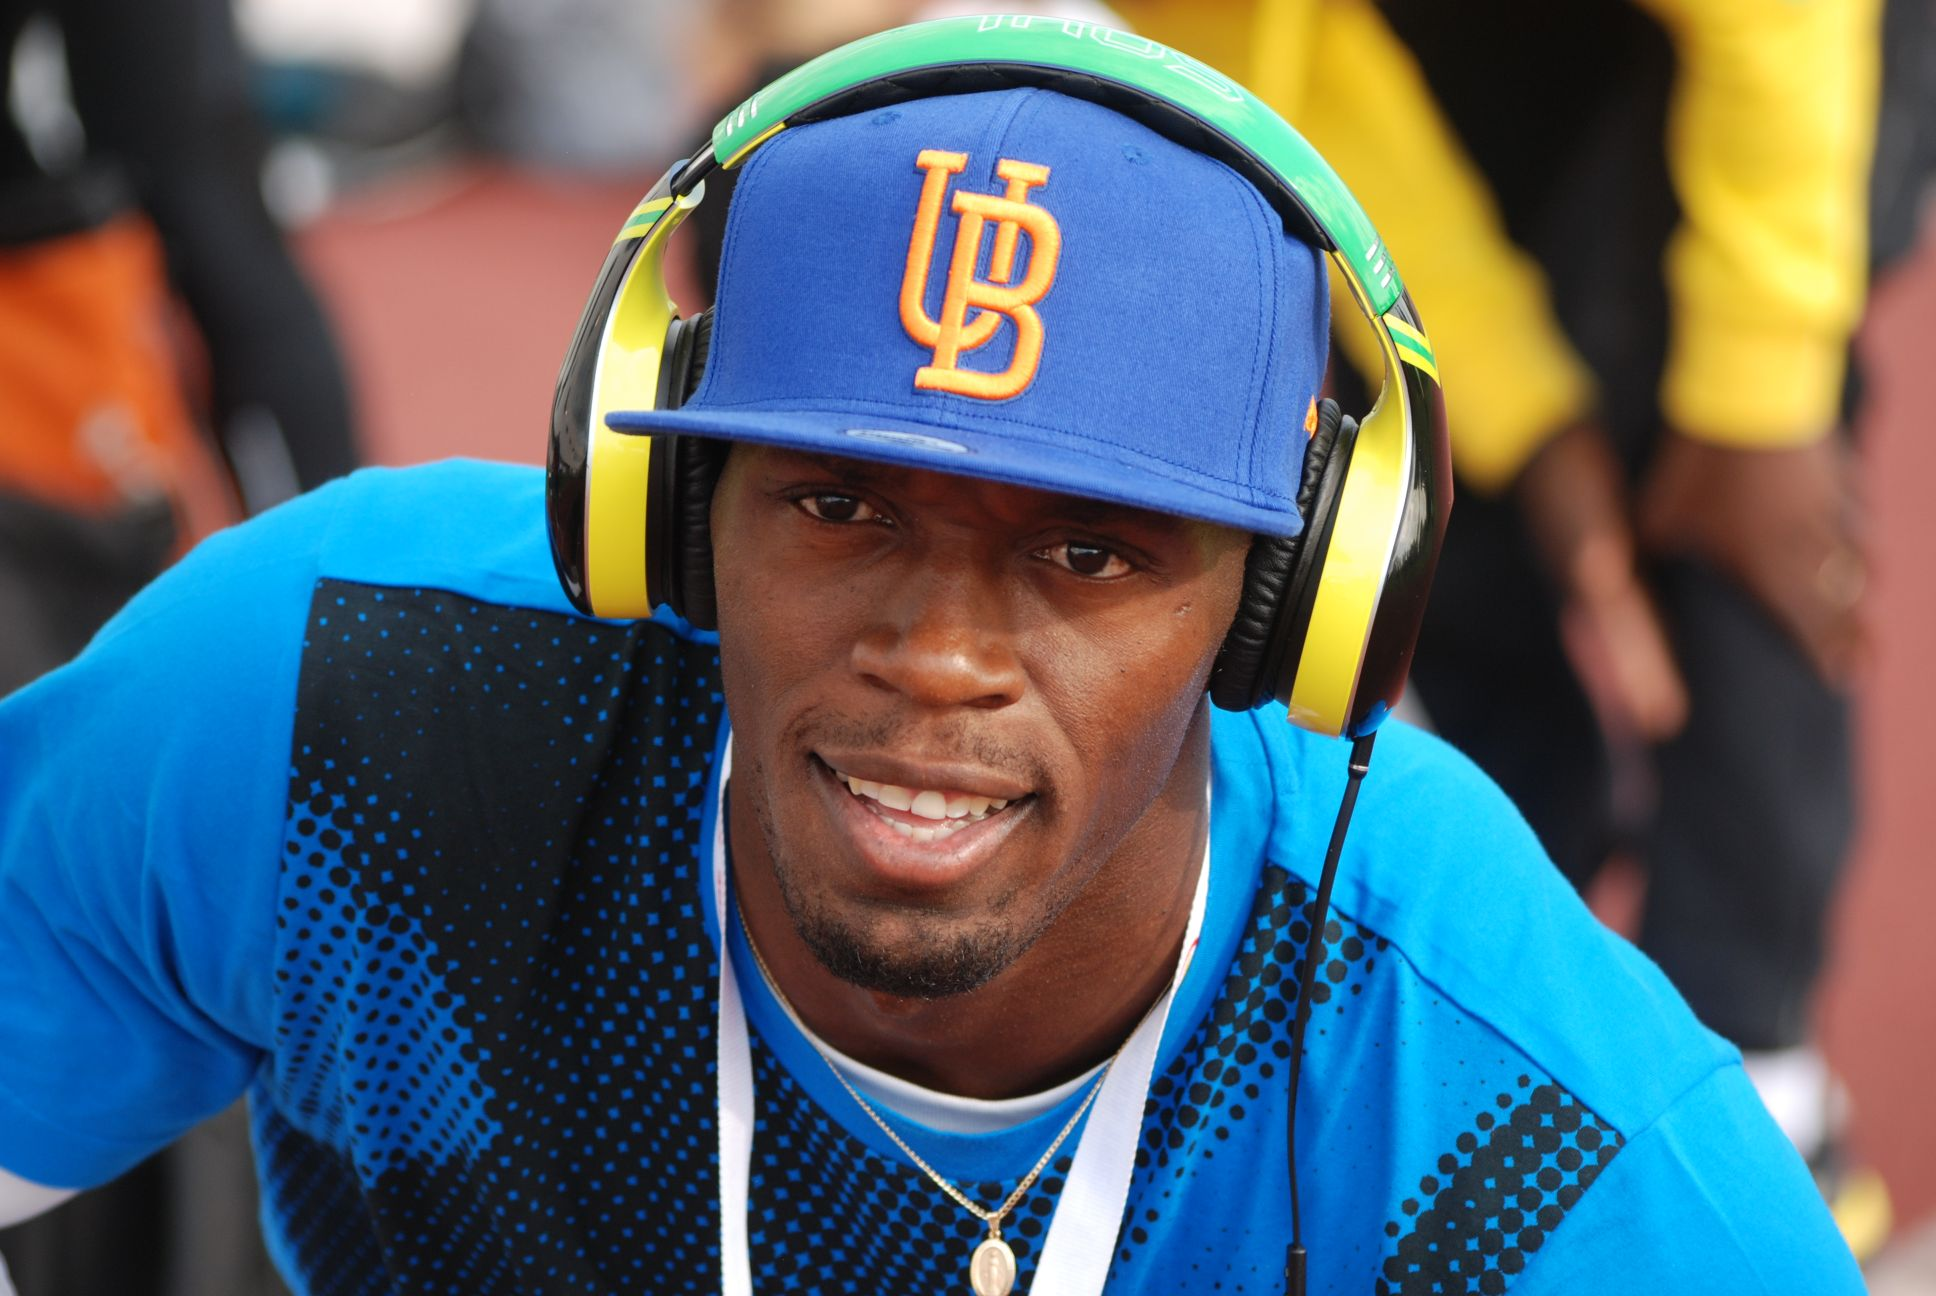 Usain Bolt Partners with SOUL Electronics